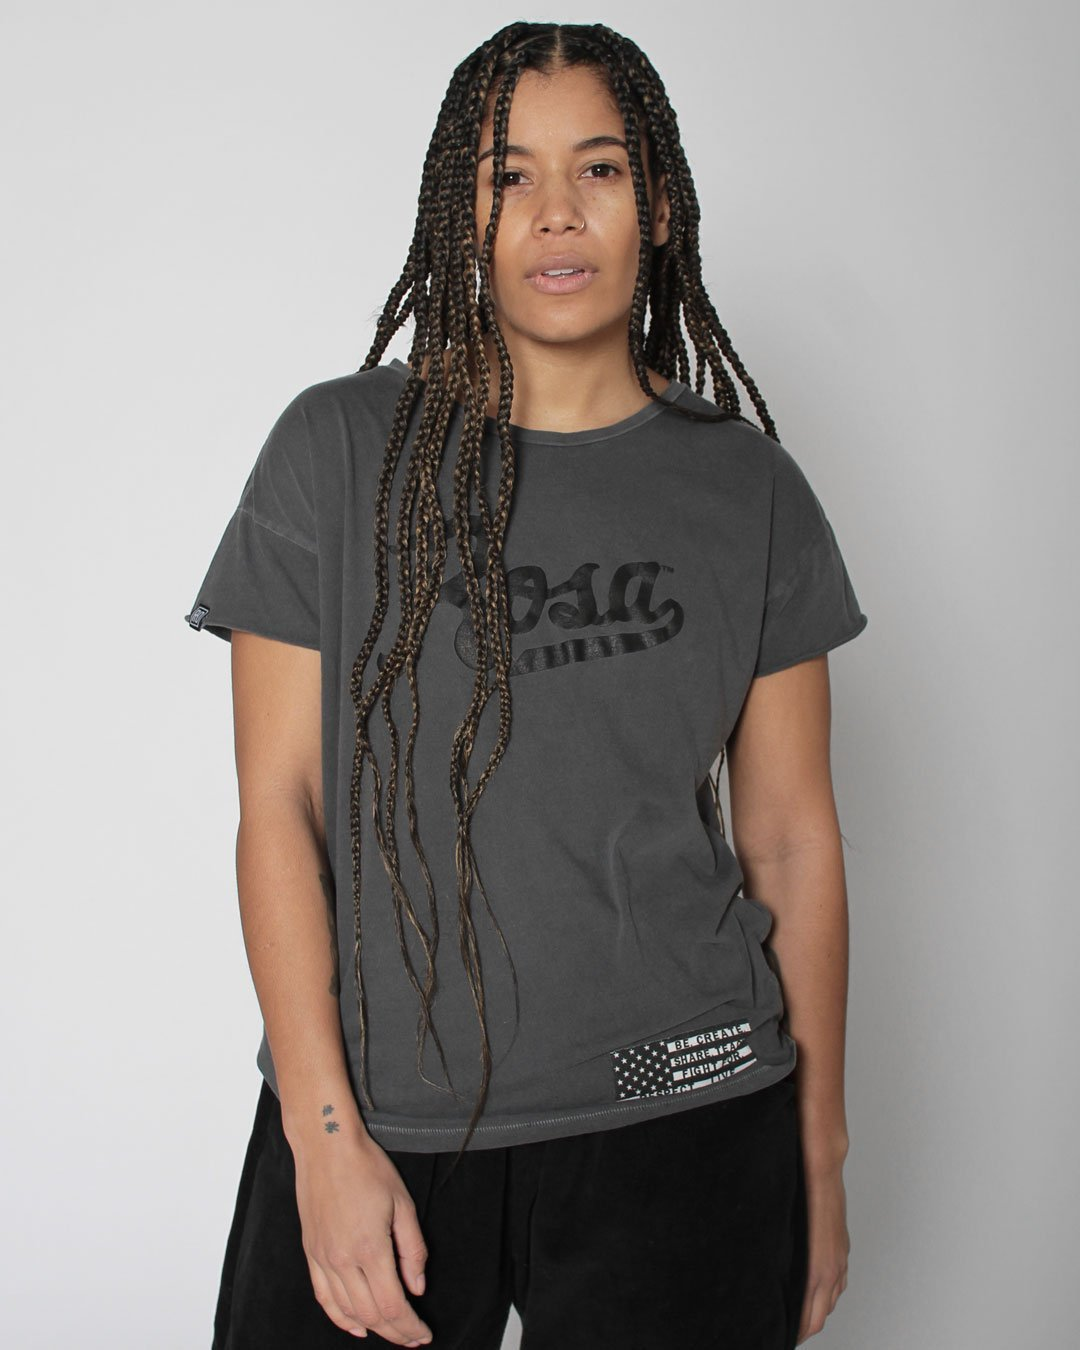 BHT - Rosa Parks Women's Tee - Roots of Inc dba Roots of Fight